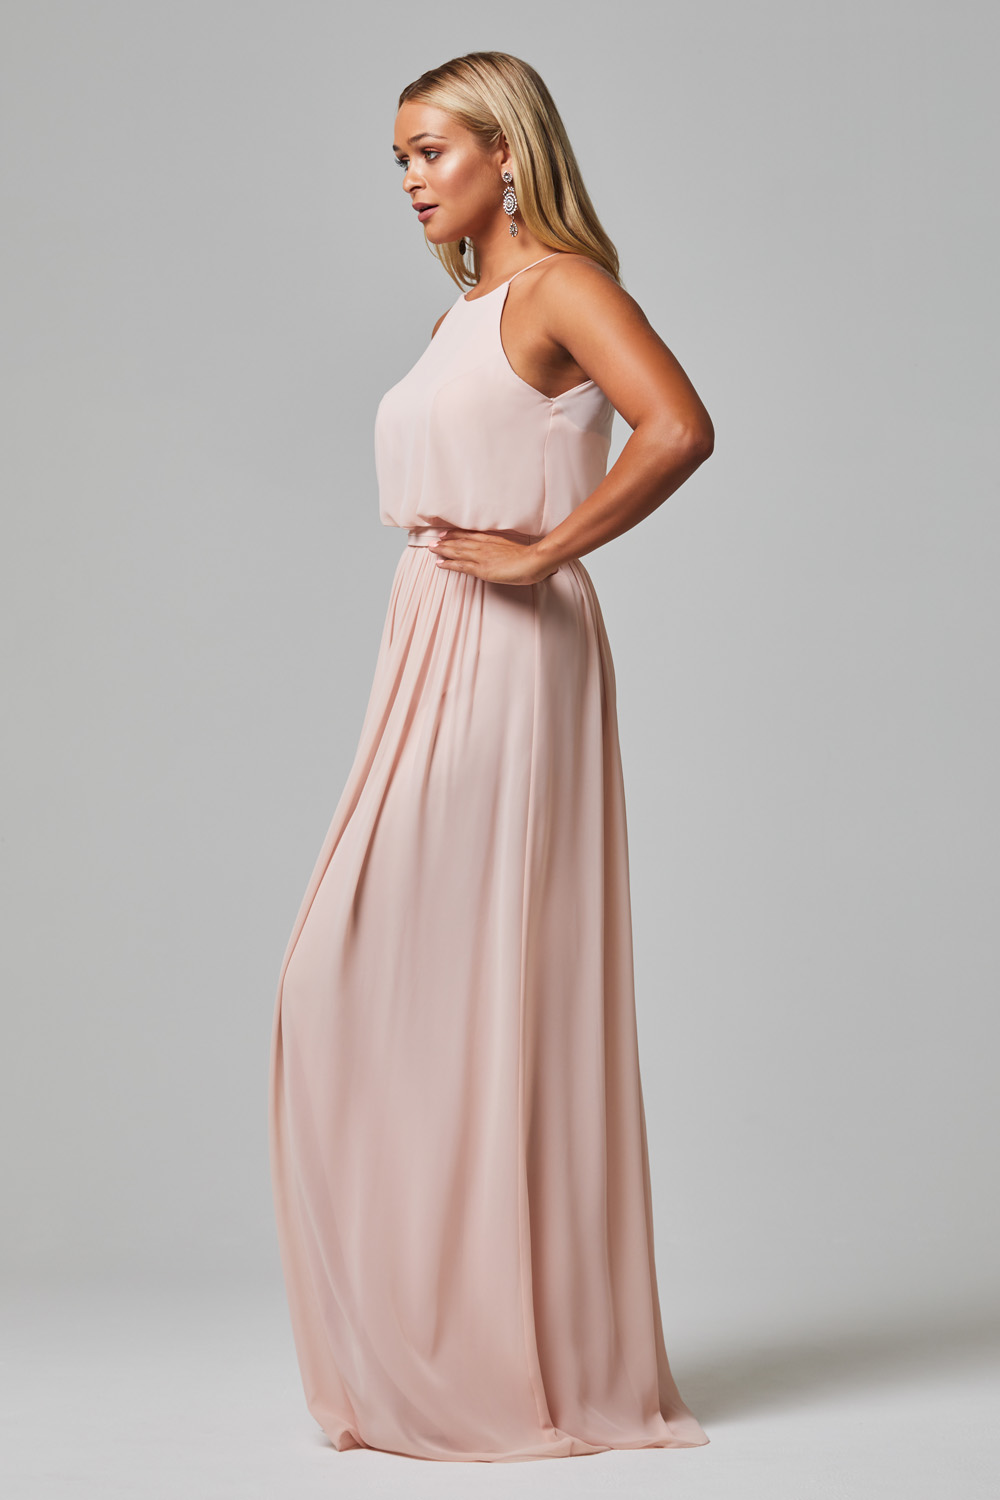 TO822 SYLVIA PINK SIDE